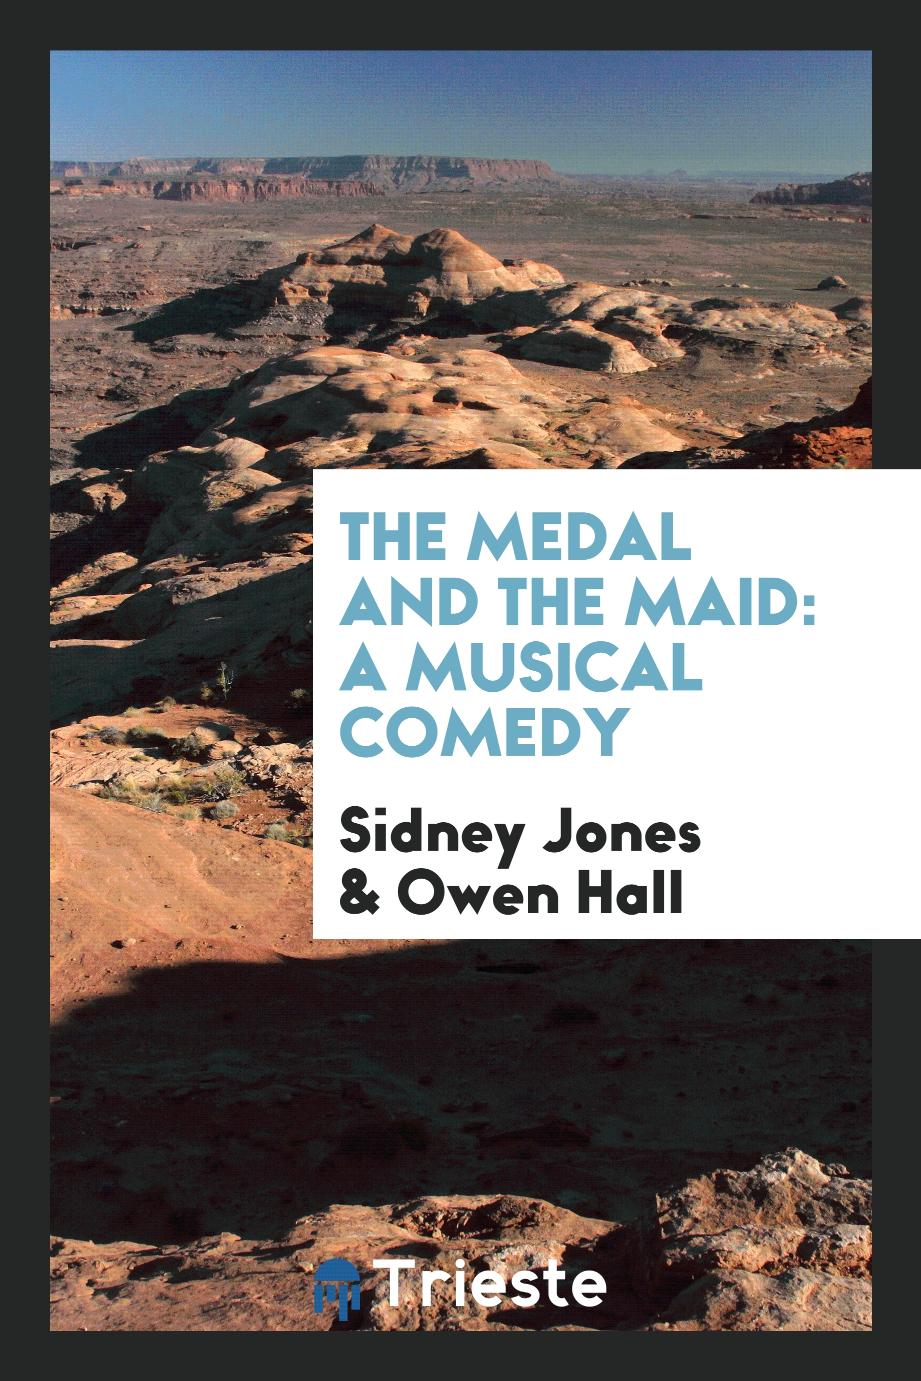 The Medal and the Maid: A Musical Comedy